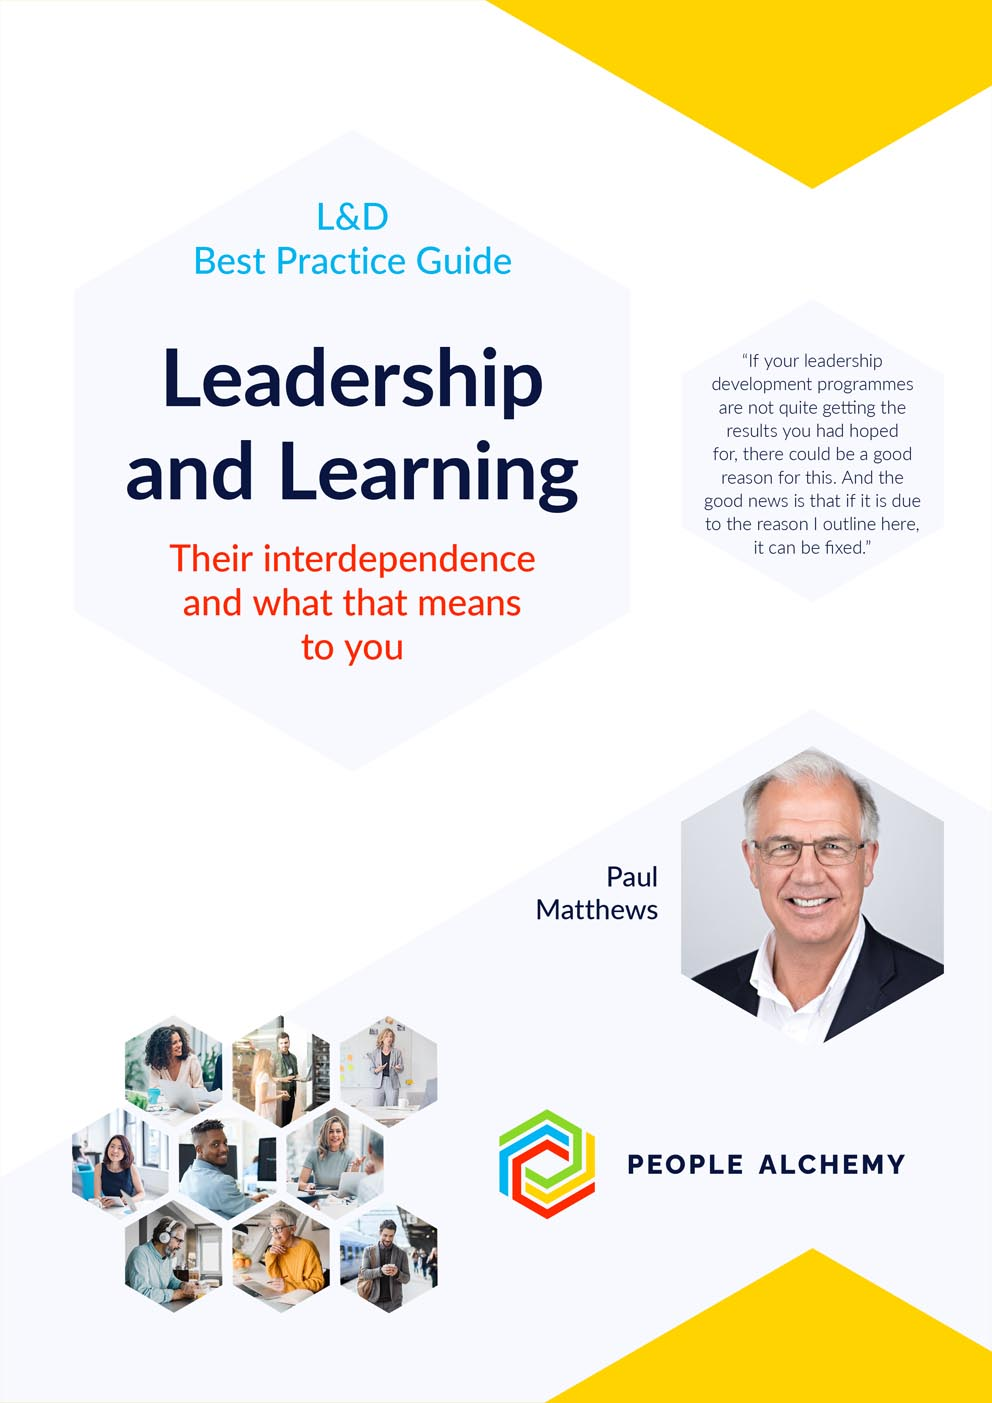 Leadership and Learning: What their interdependence means